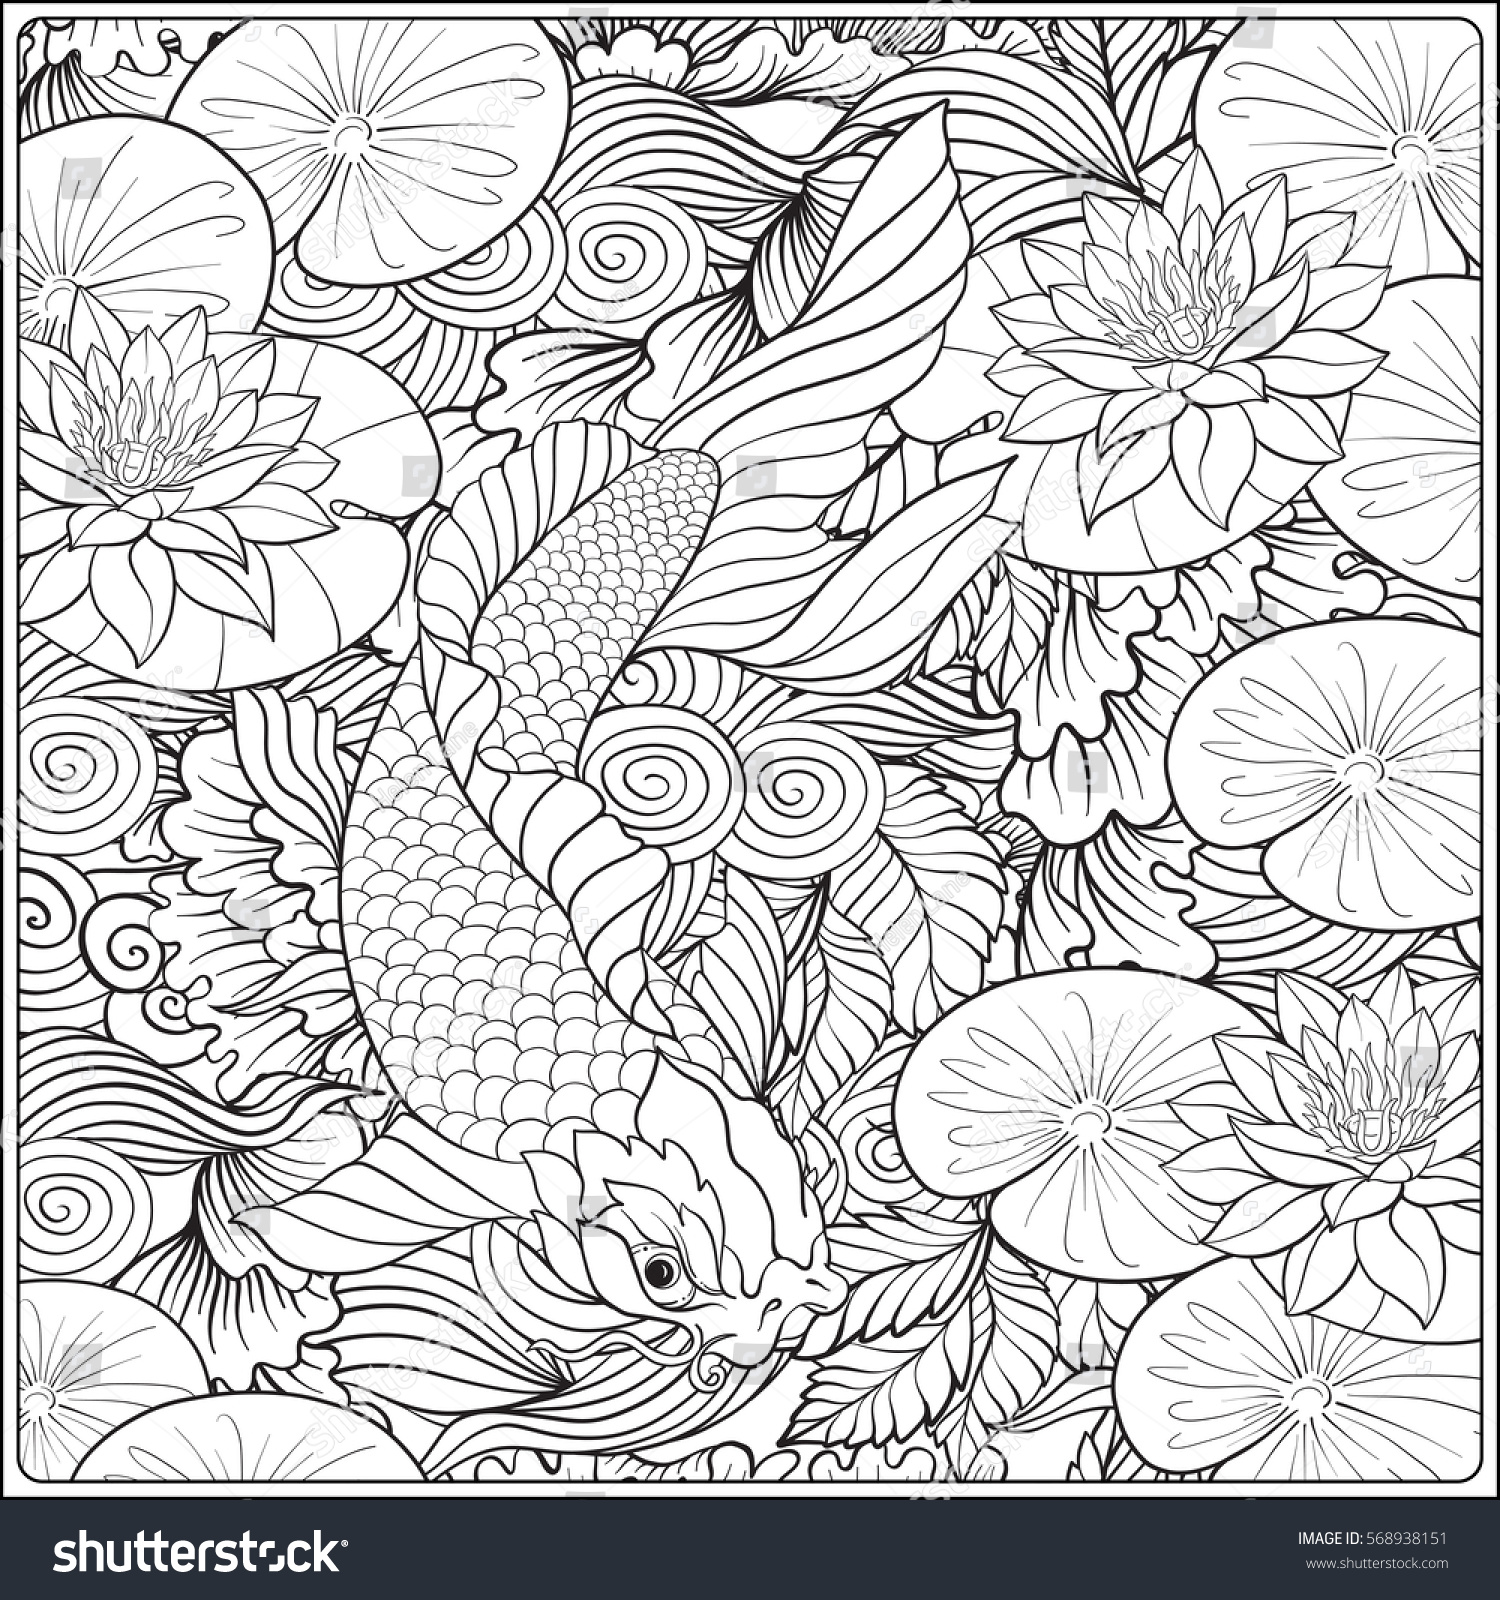 1500x1600 Japanese Landscape With Lotus And Fish. Outline Drawing Coloring